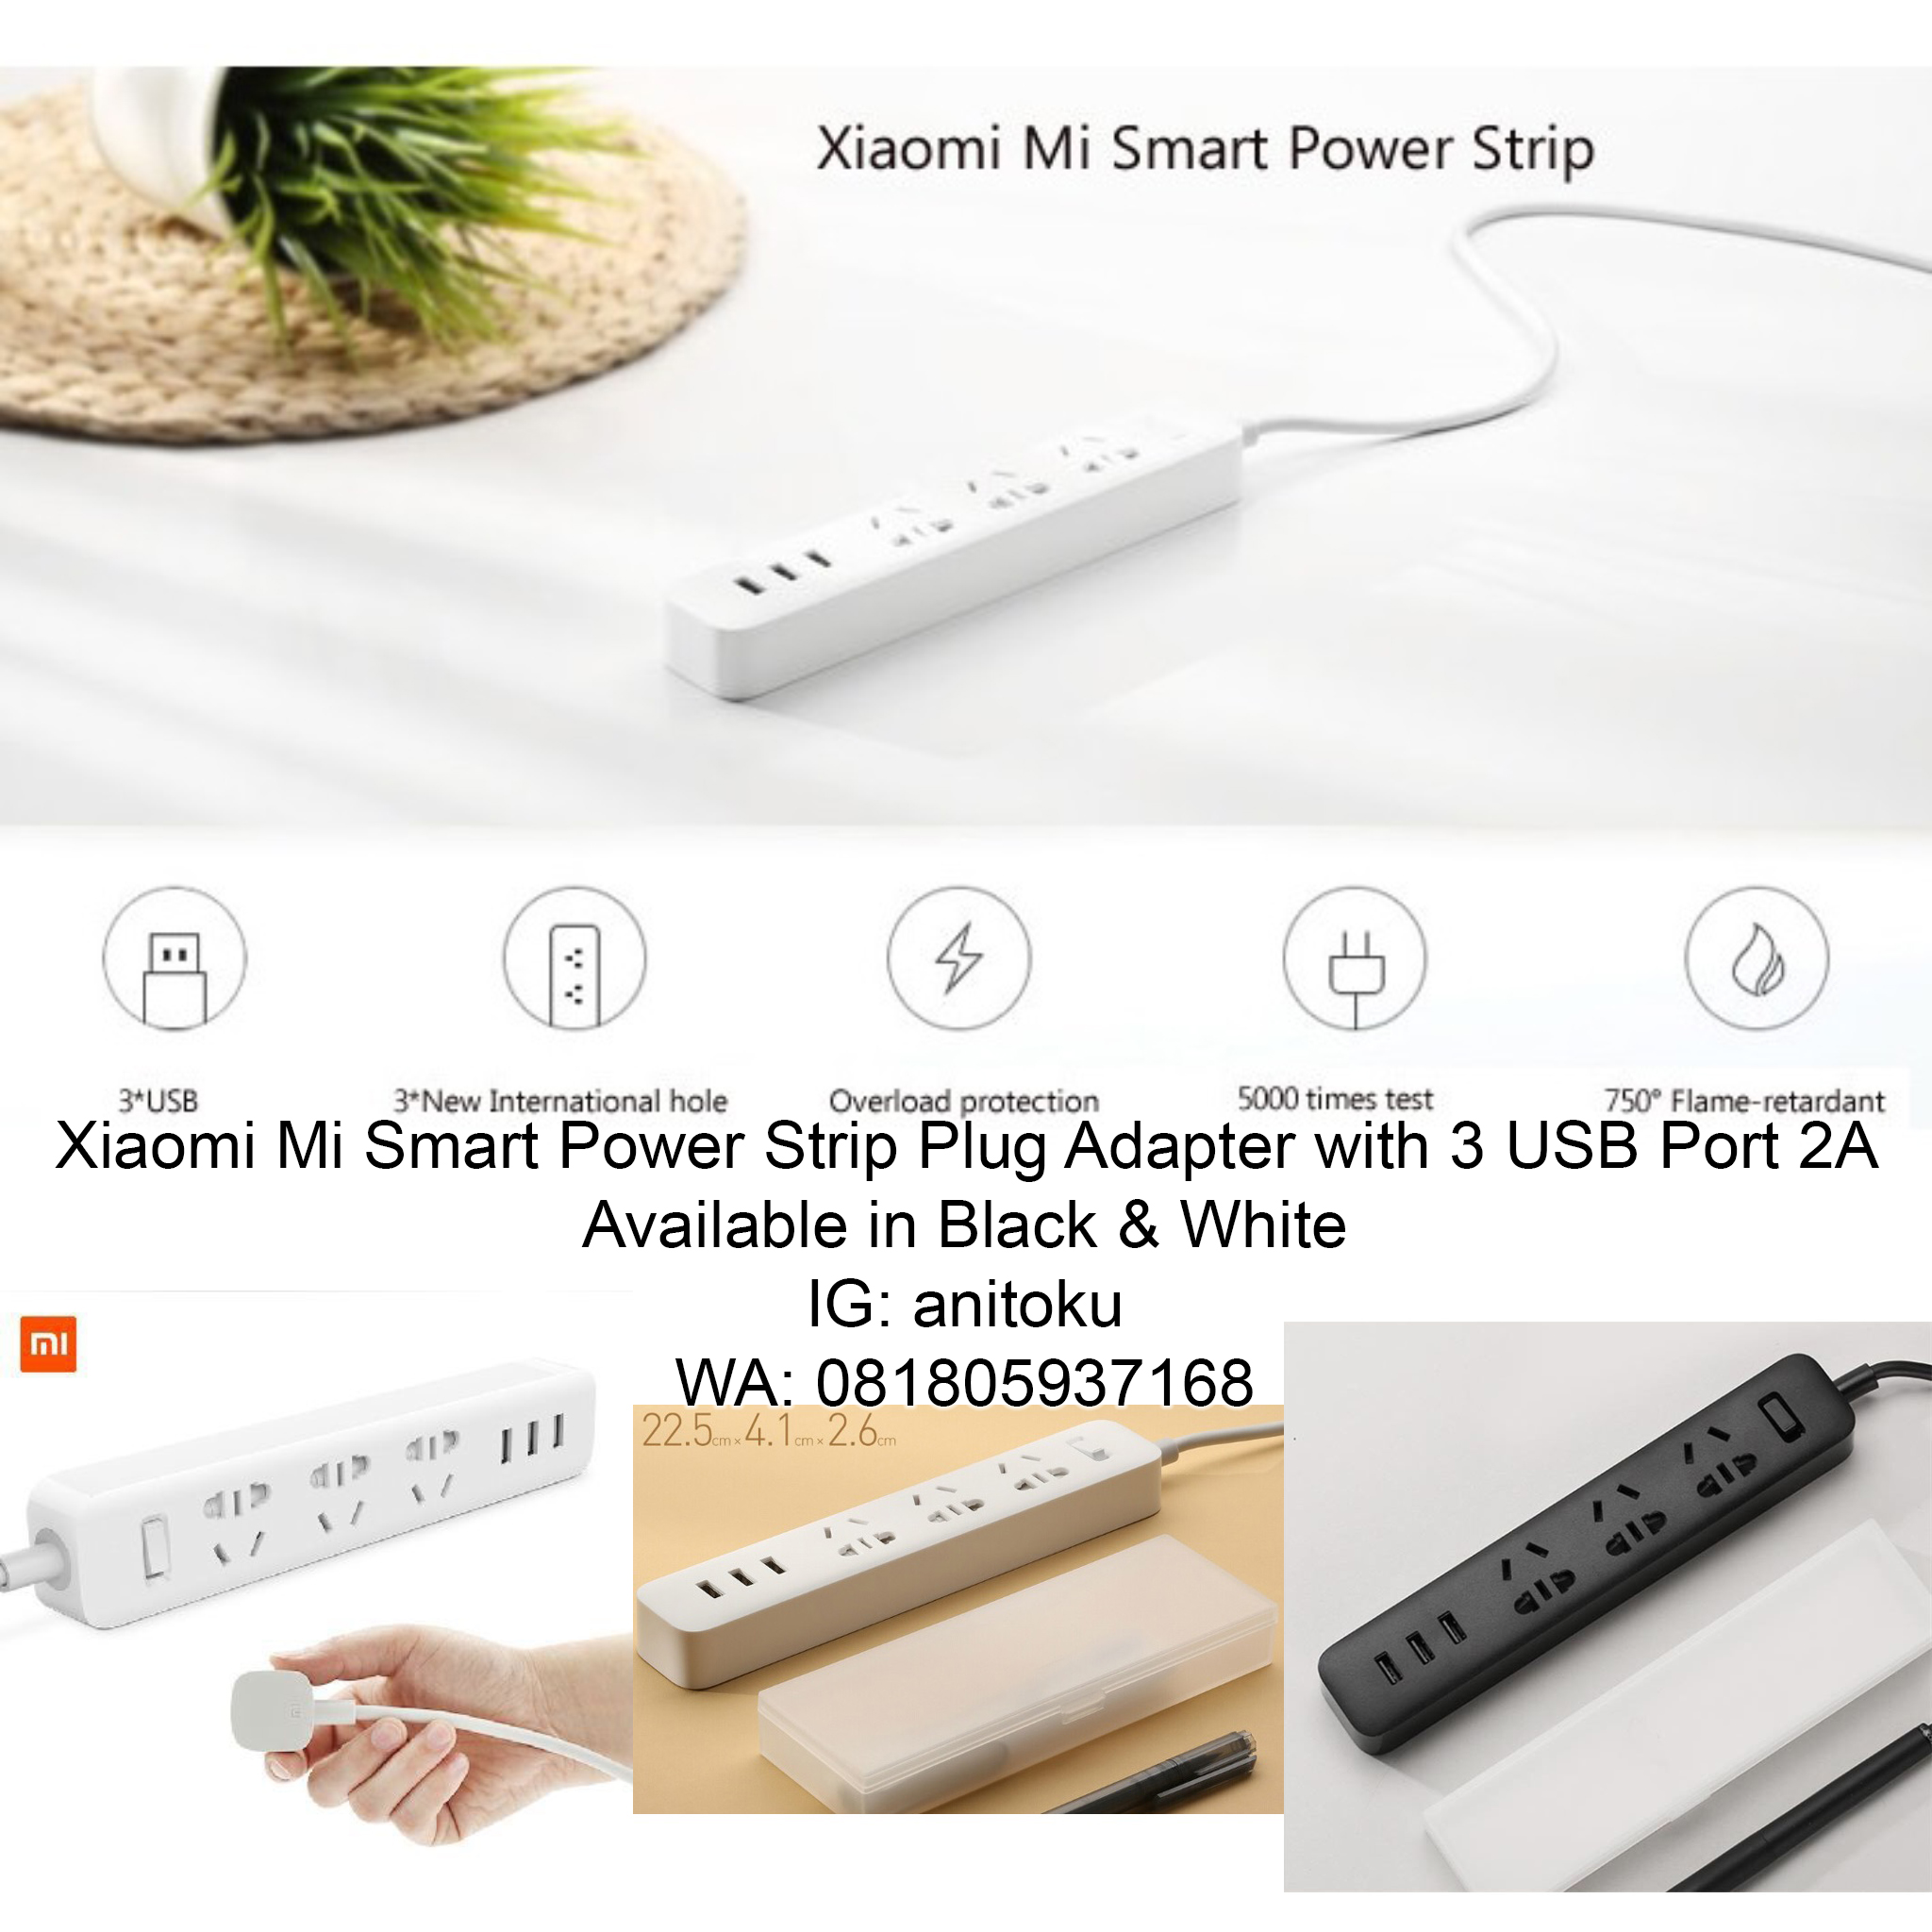 Jual Xiaomi Mi Smart Power Strip Plug Adapter With 3 Usb Port 2a White Anitoku Tokopedia